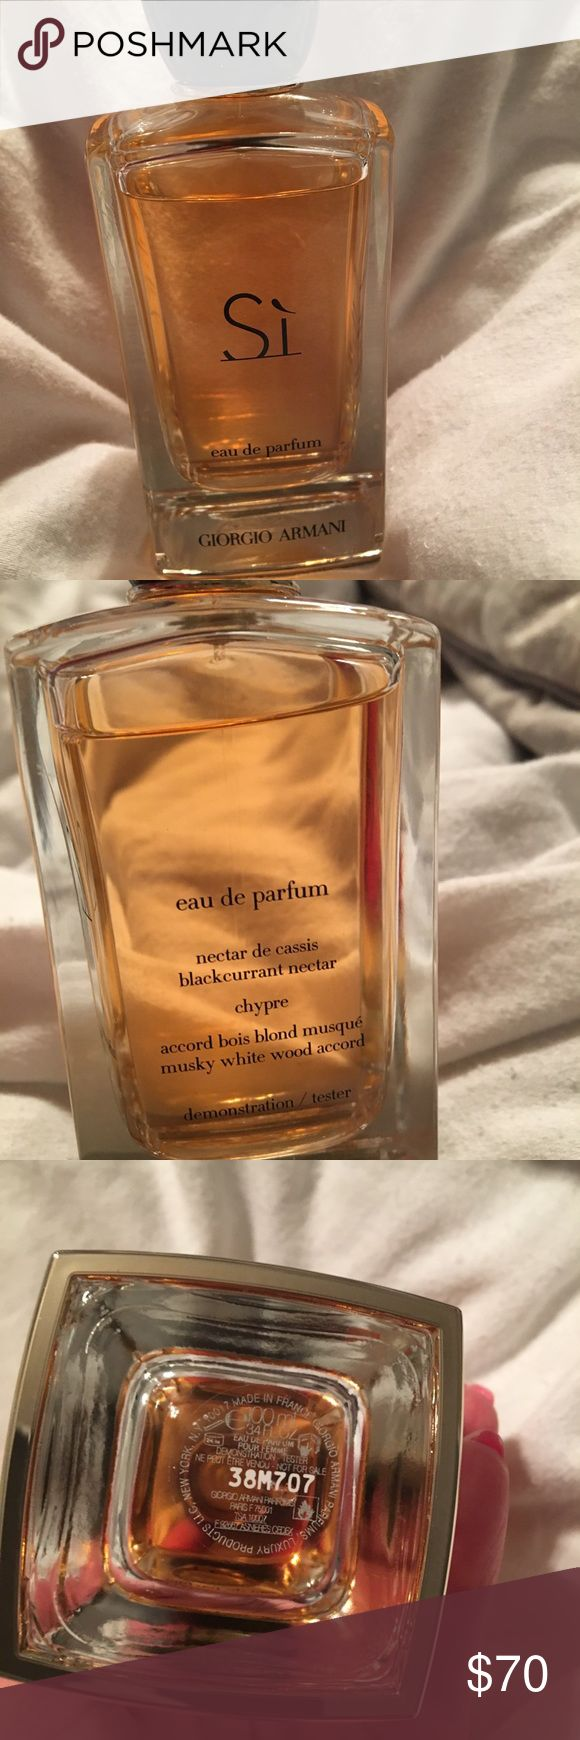 Si Eau de Parfum by Giorgio Armani Authentic Si Eau de Parfum by Giorgio Armani 3.4 oz bottle.  The Parfum last longer and smells stronger. Use a little and it will go a long way Giorgio Armani Other